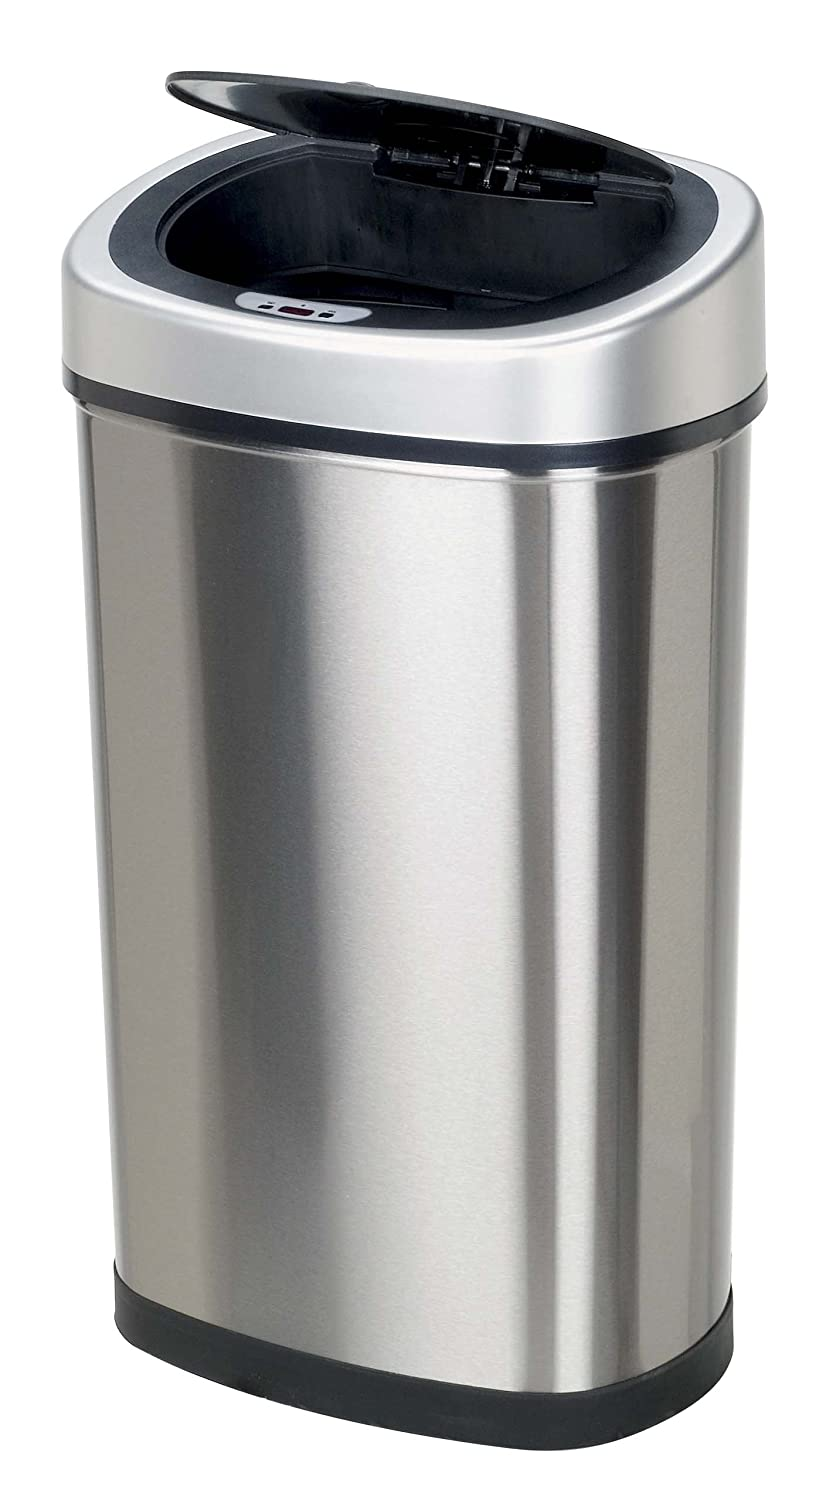 touchless trash can home kitchen office bathroom 13 2 gallon stainless steel ebay. Black Bedroom Furniture Sets. Home Design Ideas